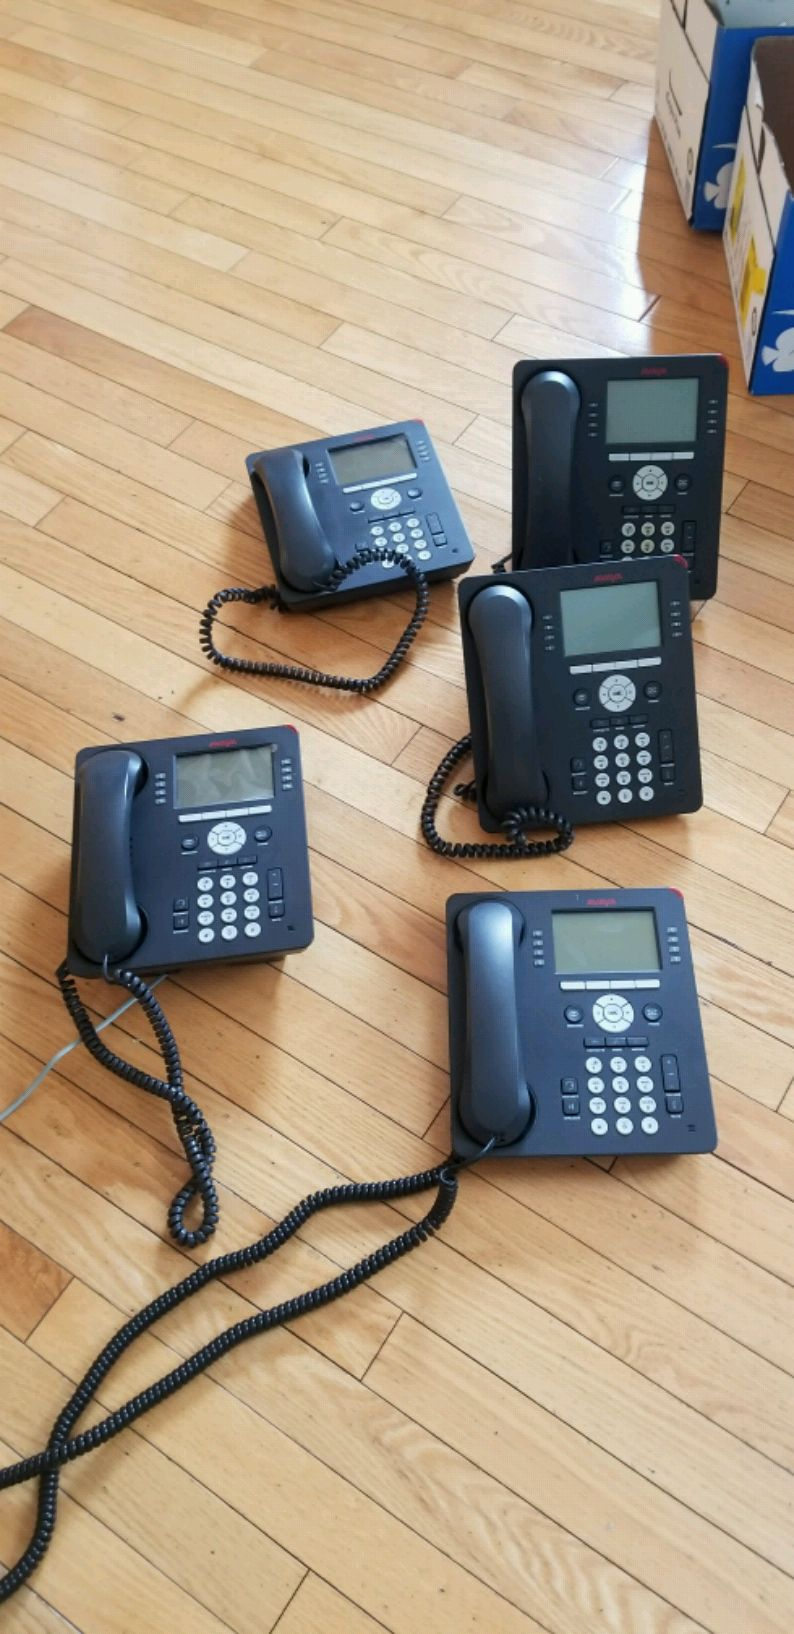 hight resolution of used avaya business ip office phone 5 phones wiring for sale in telephone wiring color code business phone wiring